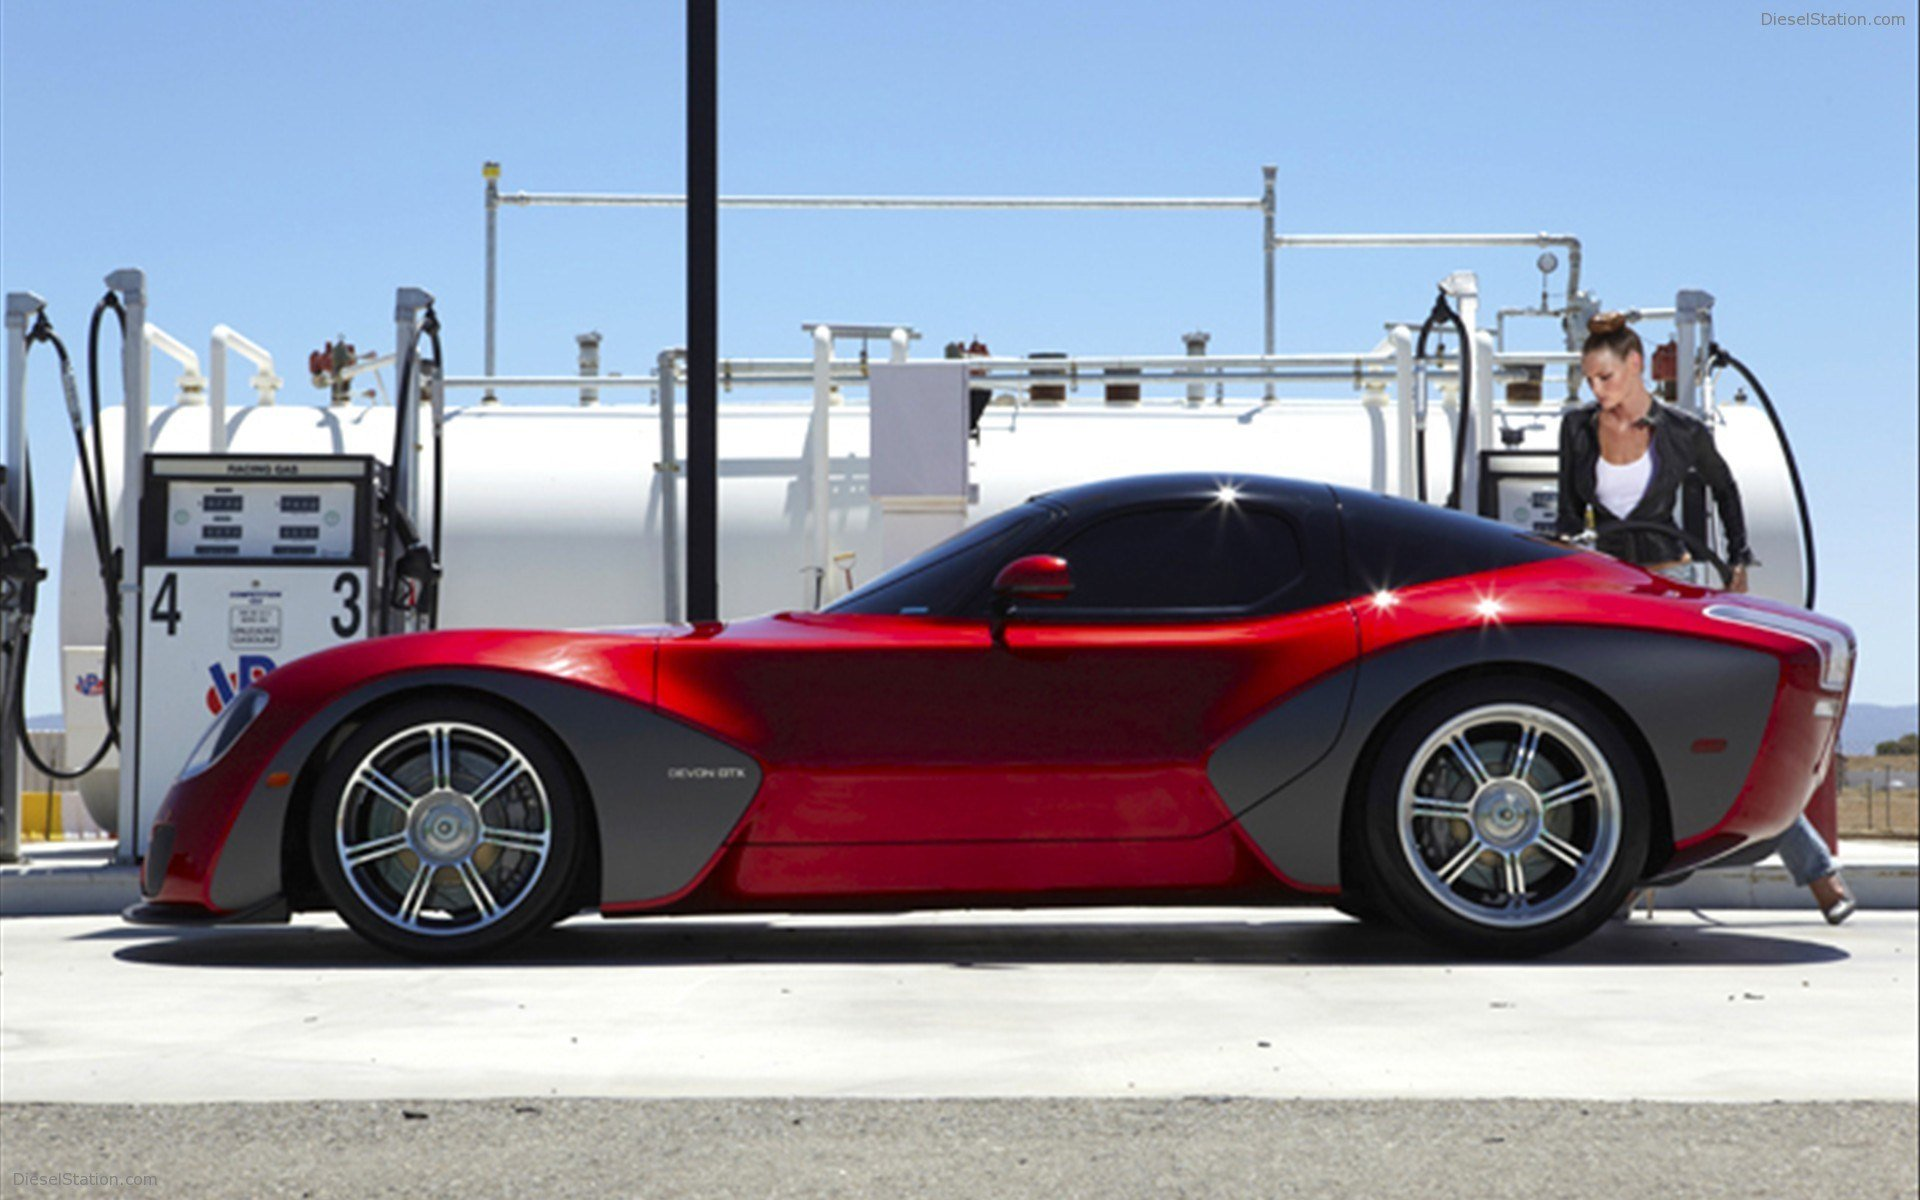 New 2010 Devon Gtx Widescreen Exotic Car Image 10 Of 68 On This Month